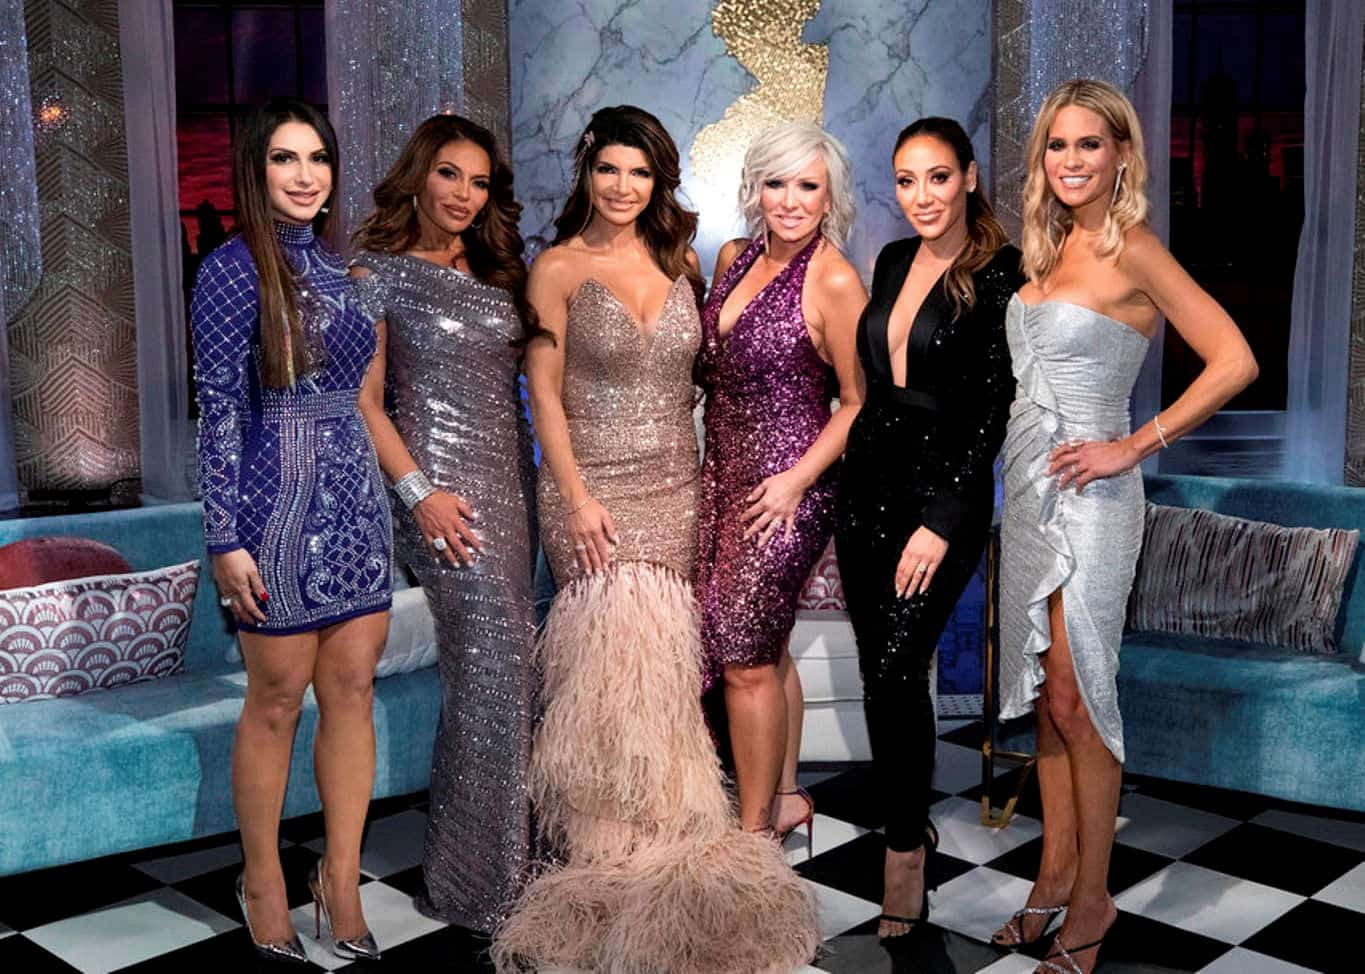 VIDEO: Watch the 'RHONJ' Reunion Trailer! Teresa is Confronted by Margaret and Danielle Refuses to Appear on Stage, Plus Dolores Hints at Relationship Trouble